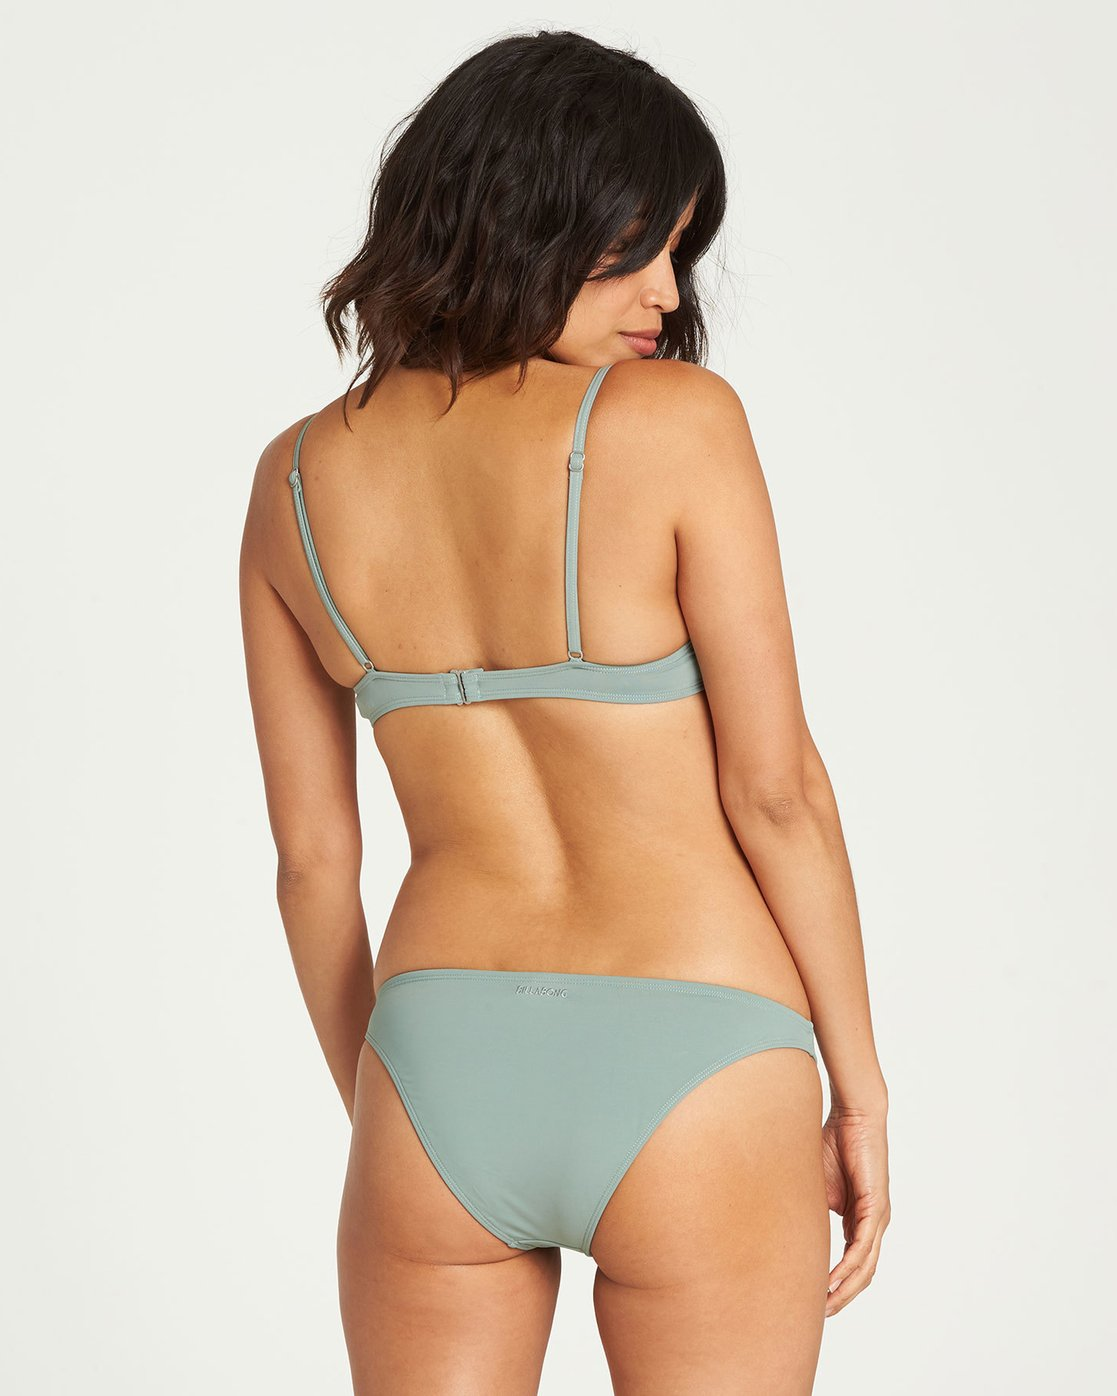 Billabong Womens Sol Searcher Tropic Bikini Bottom